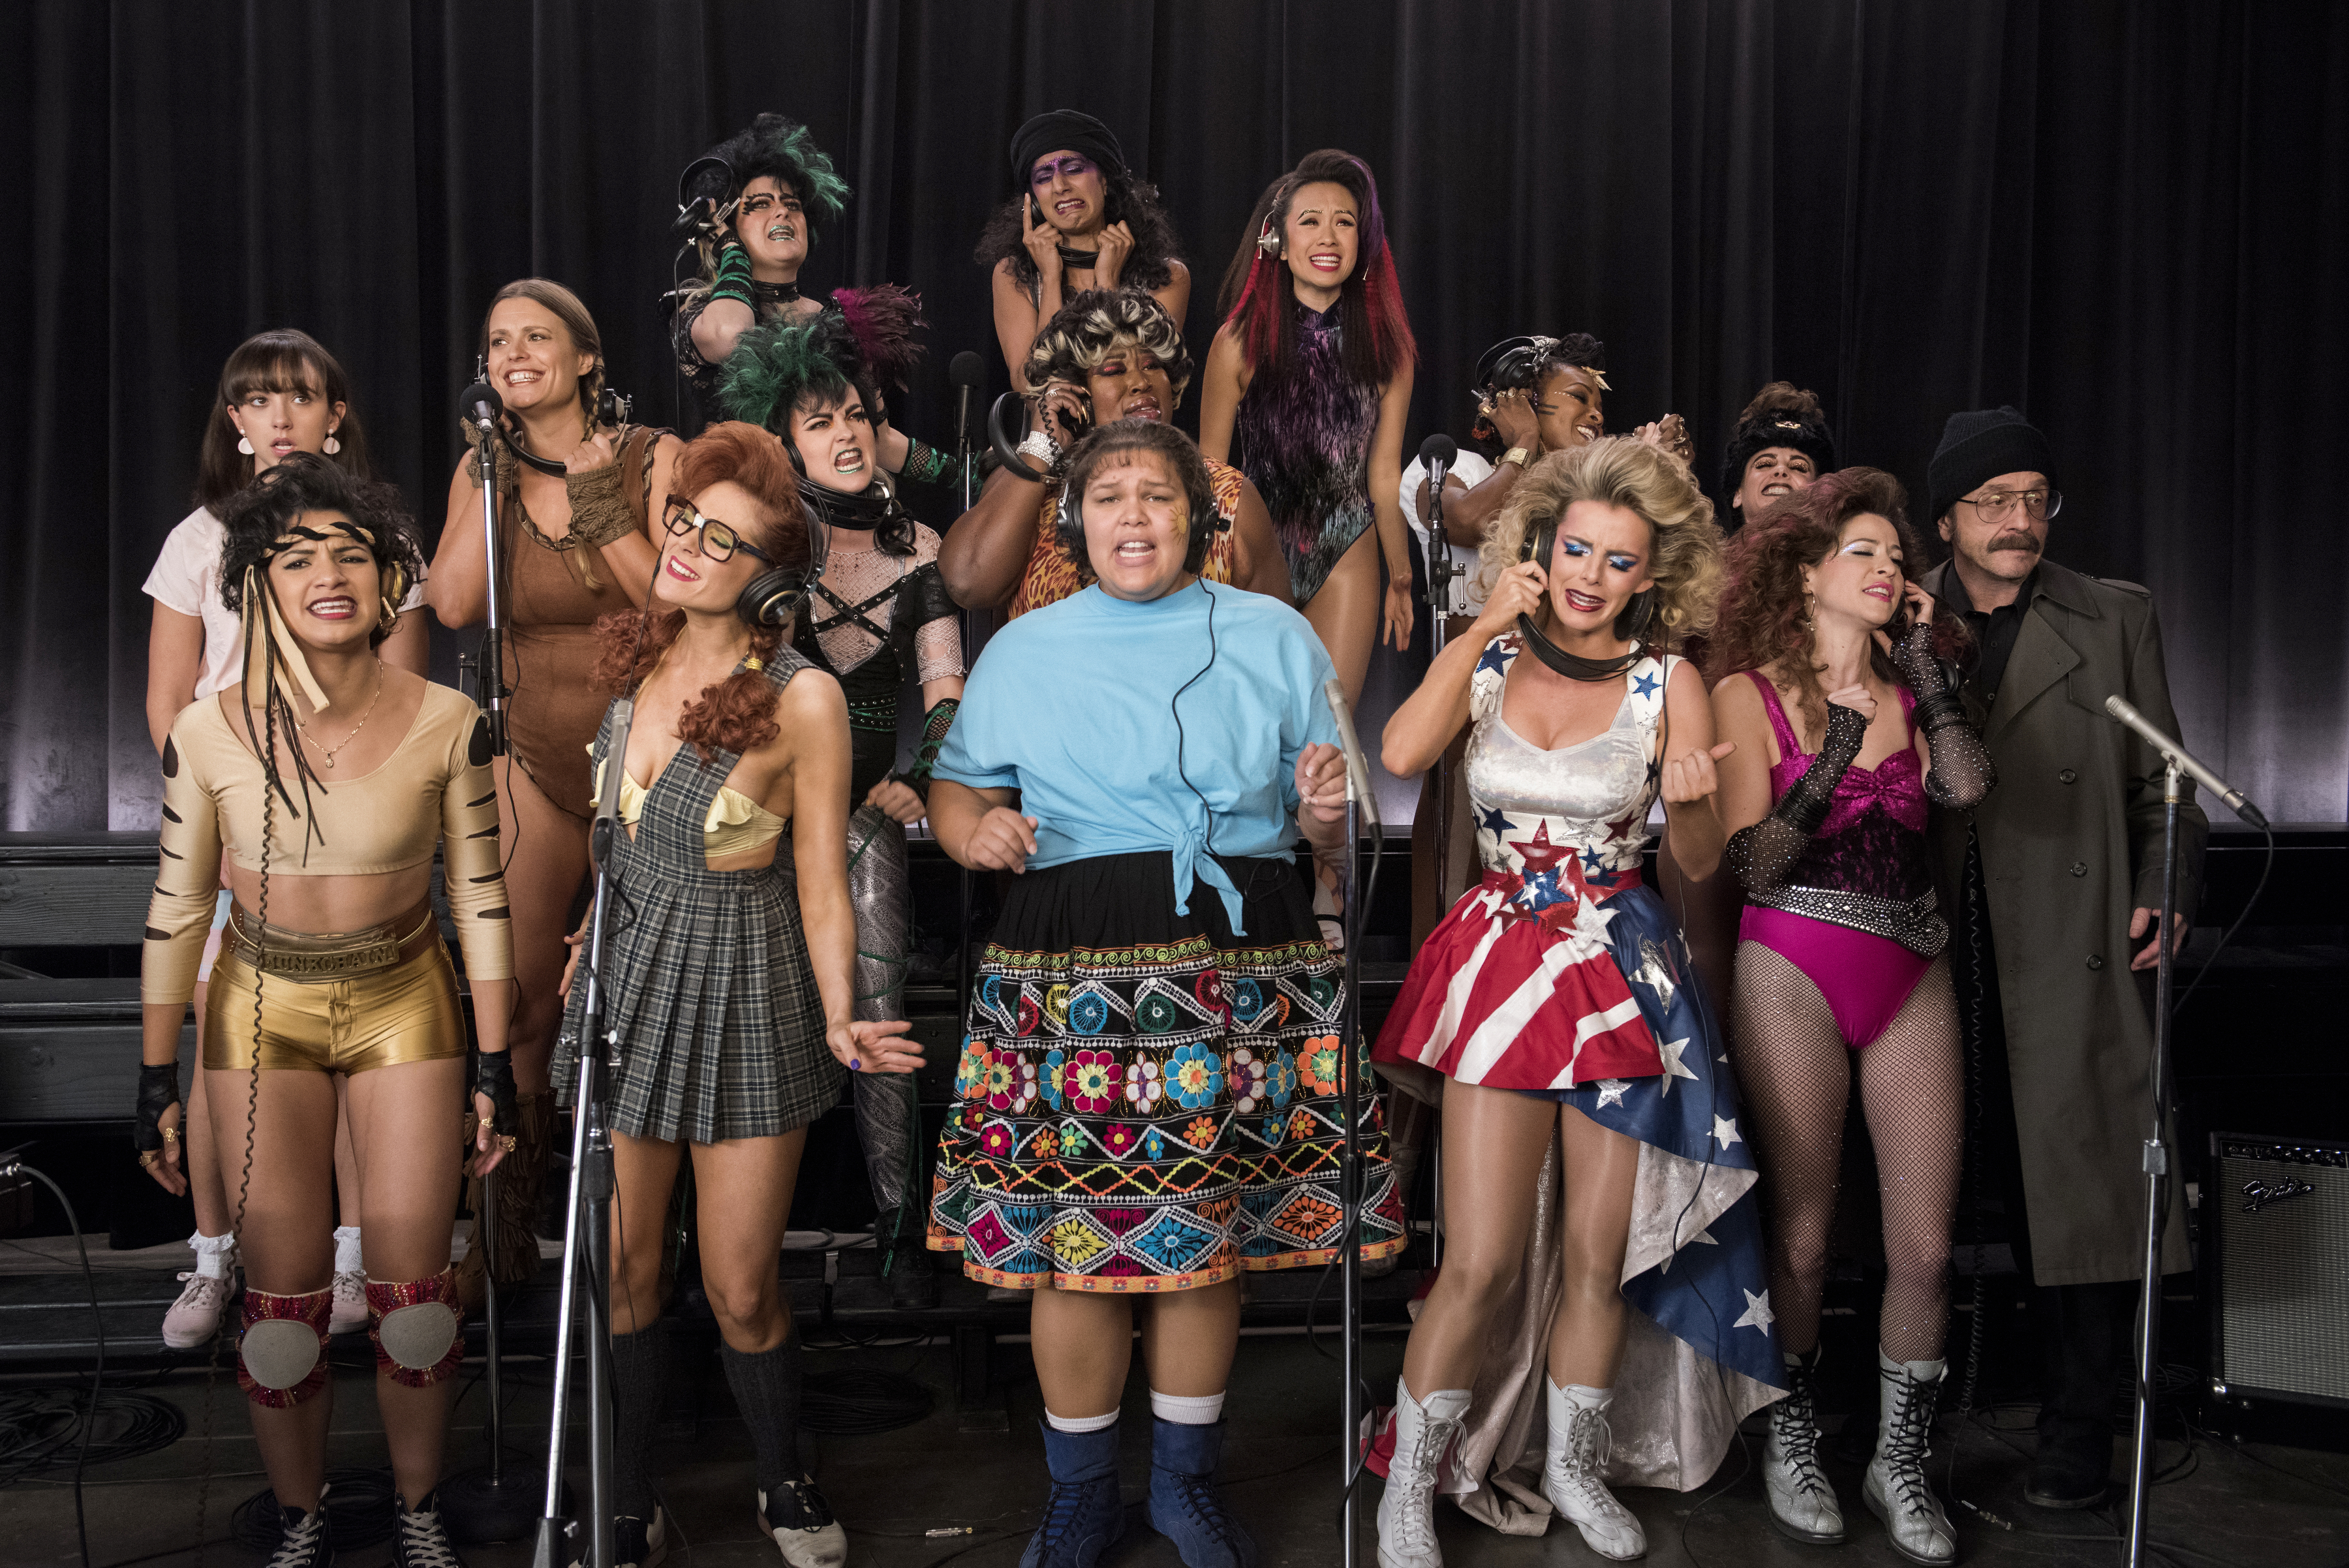 Glow Inside Season 2 S Standout Show Within A Show Episode